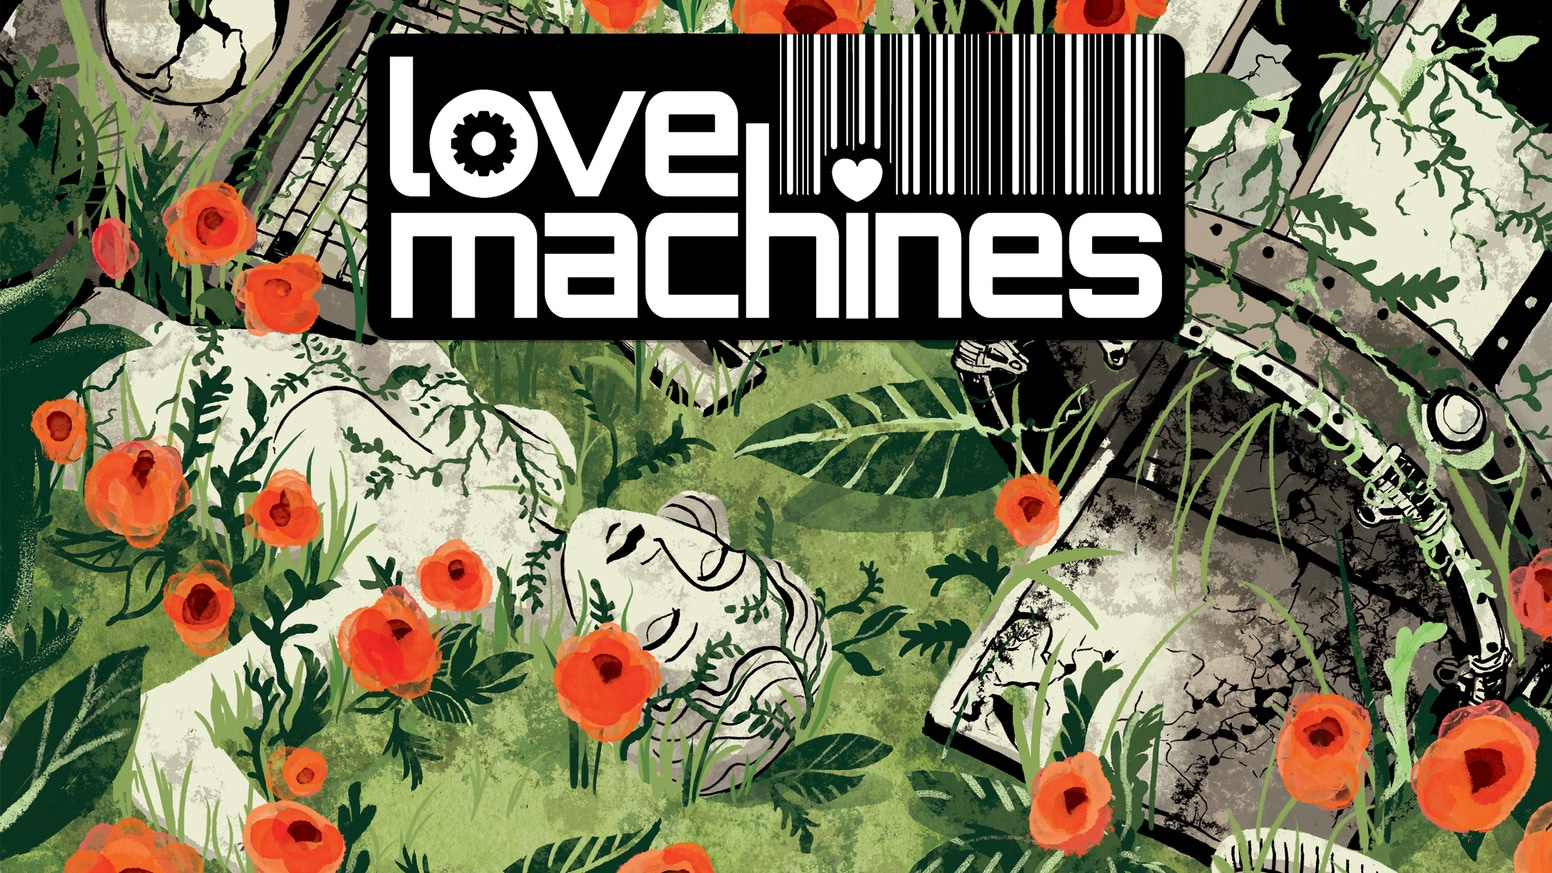 LOVE MACHINES: Volume 1 Collection by Josh Trujillo » The Most ...